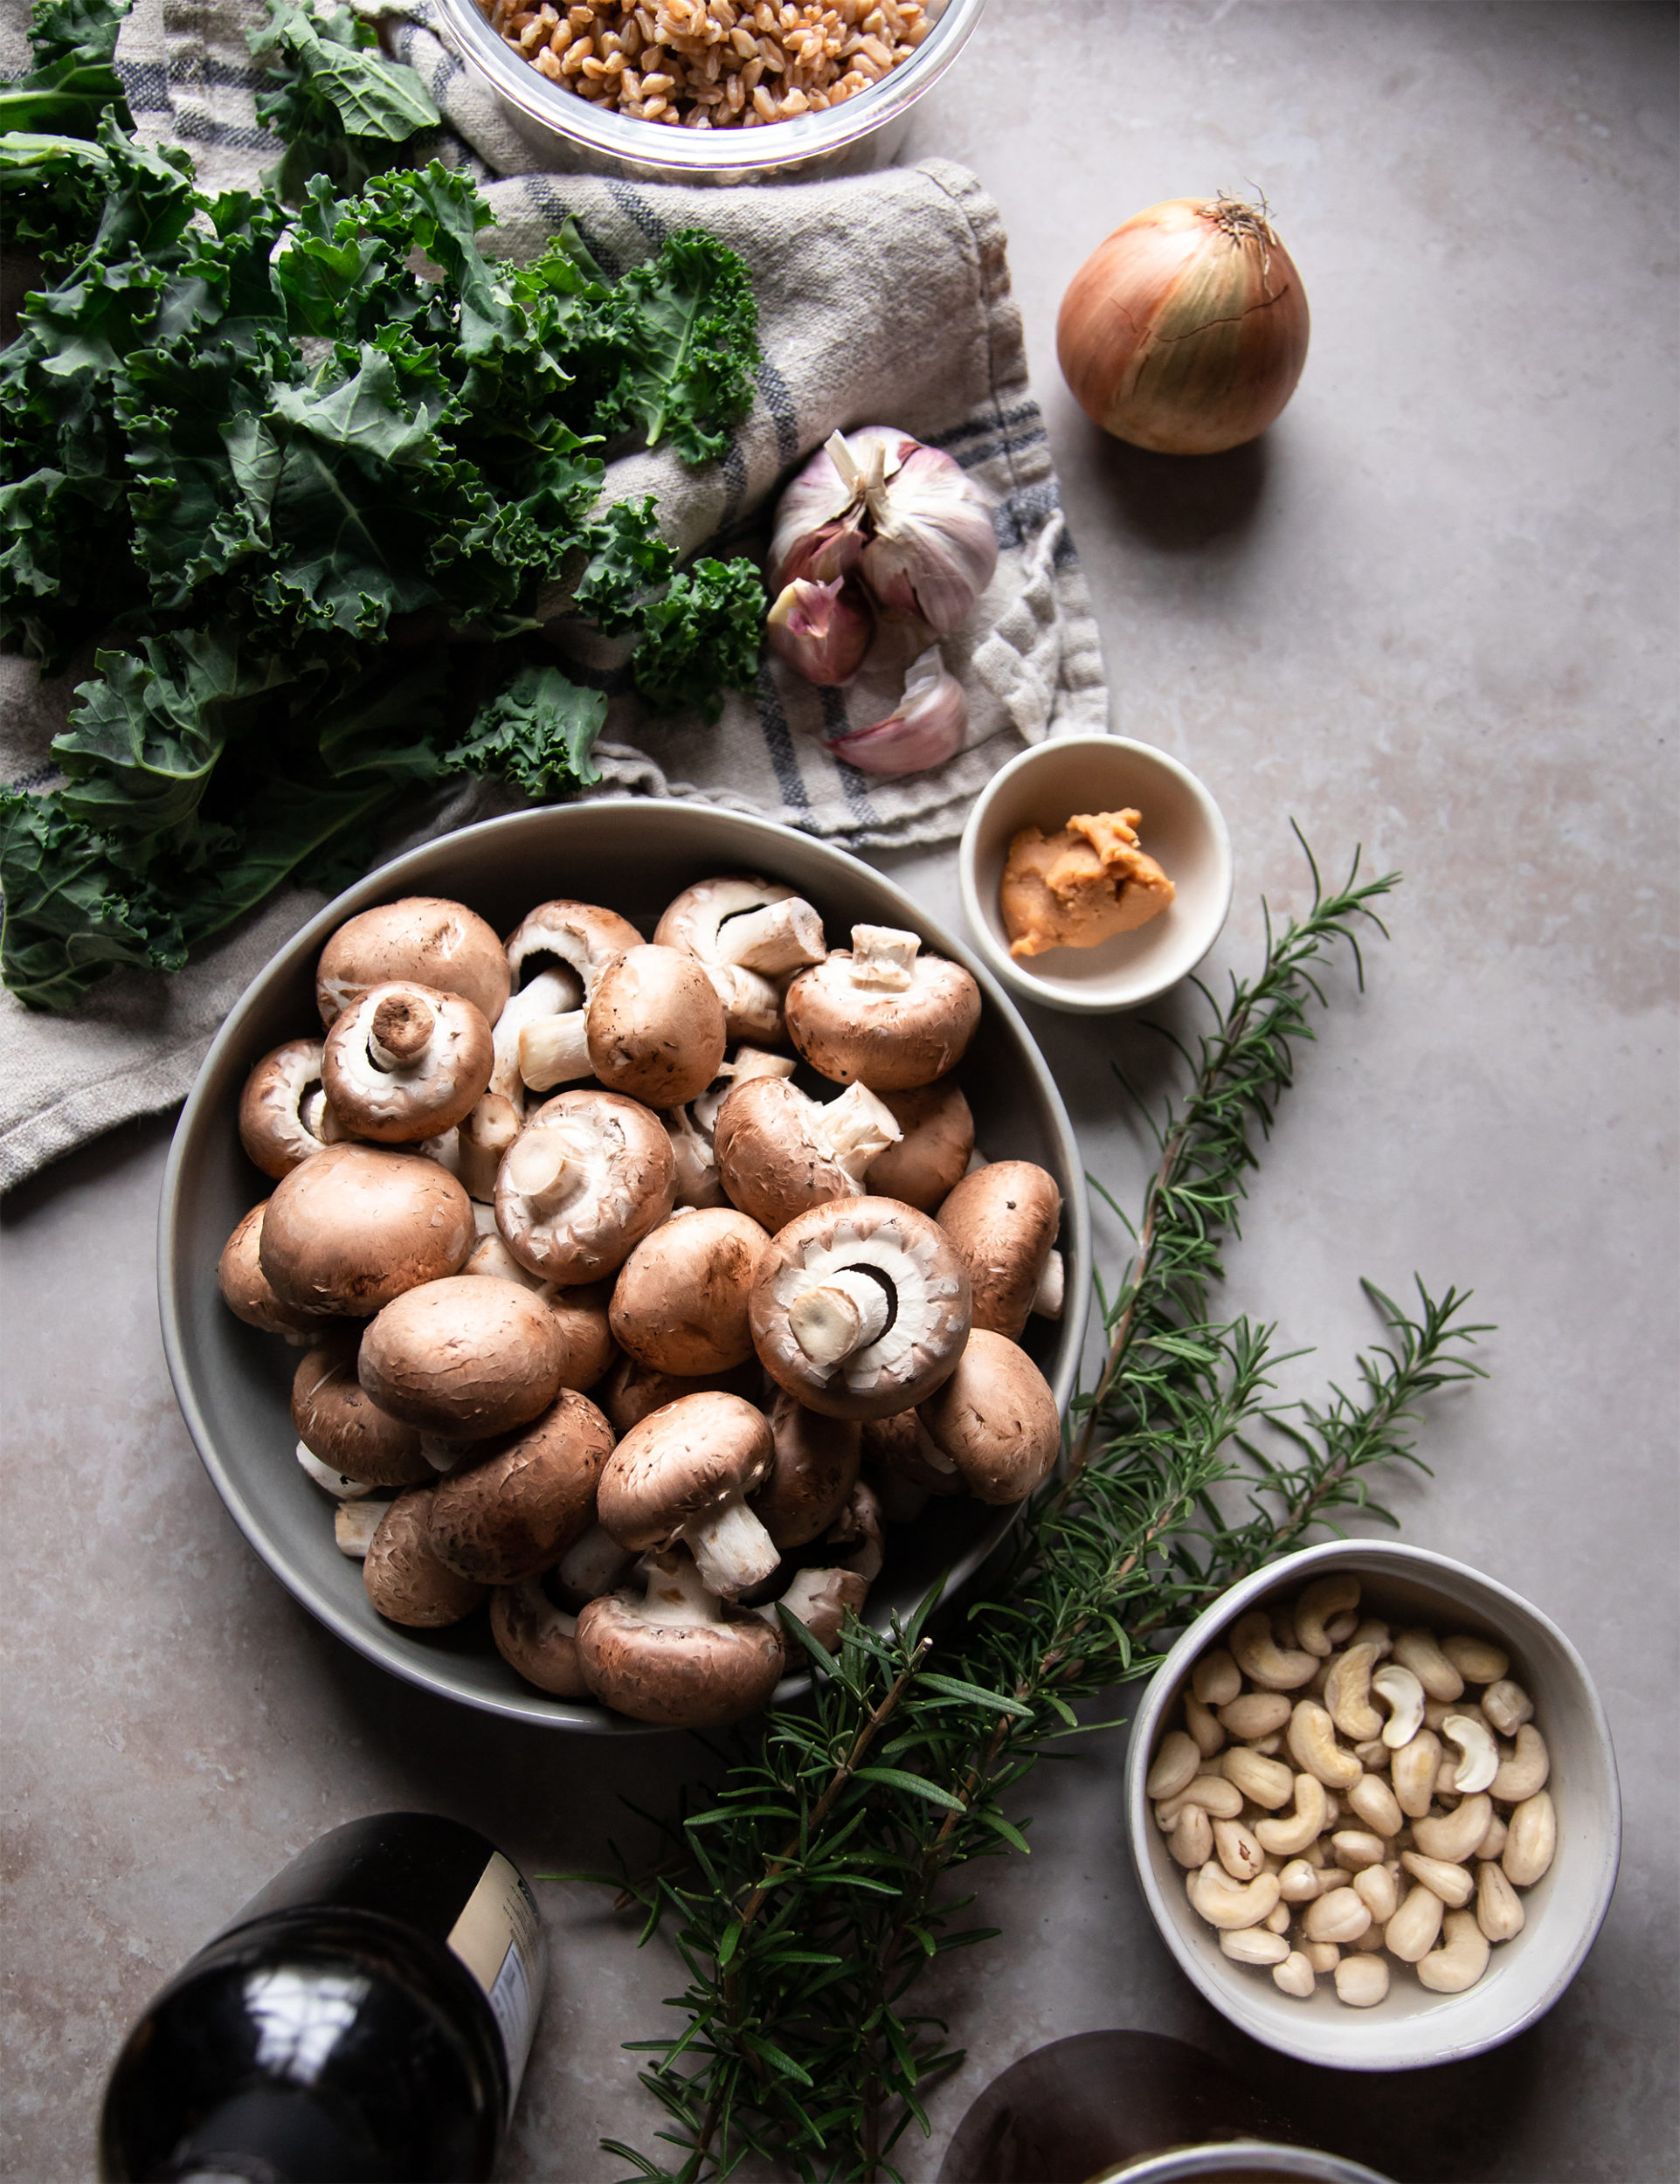 An overhead shot of ingredients on a grey stone background. There is: kale, an onion, a head of garlic, cooked farro in a bowl, a bowl of Cremini mushrooms, sprigs of rosemary, and cashews.